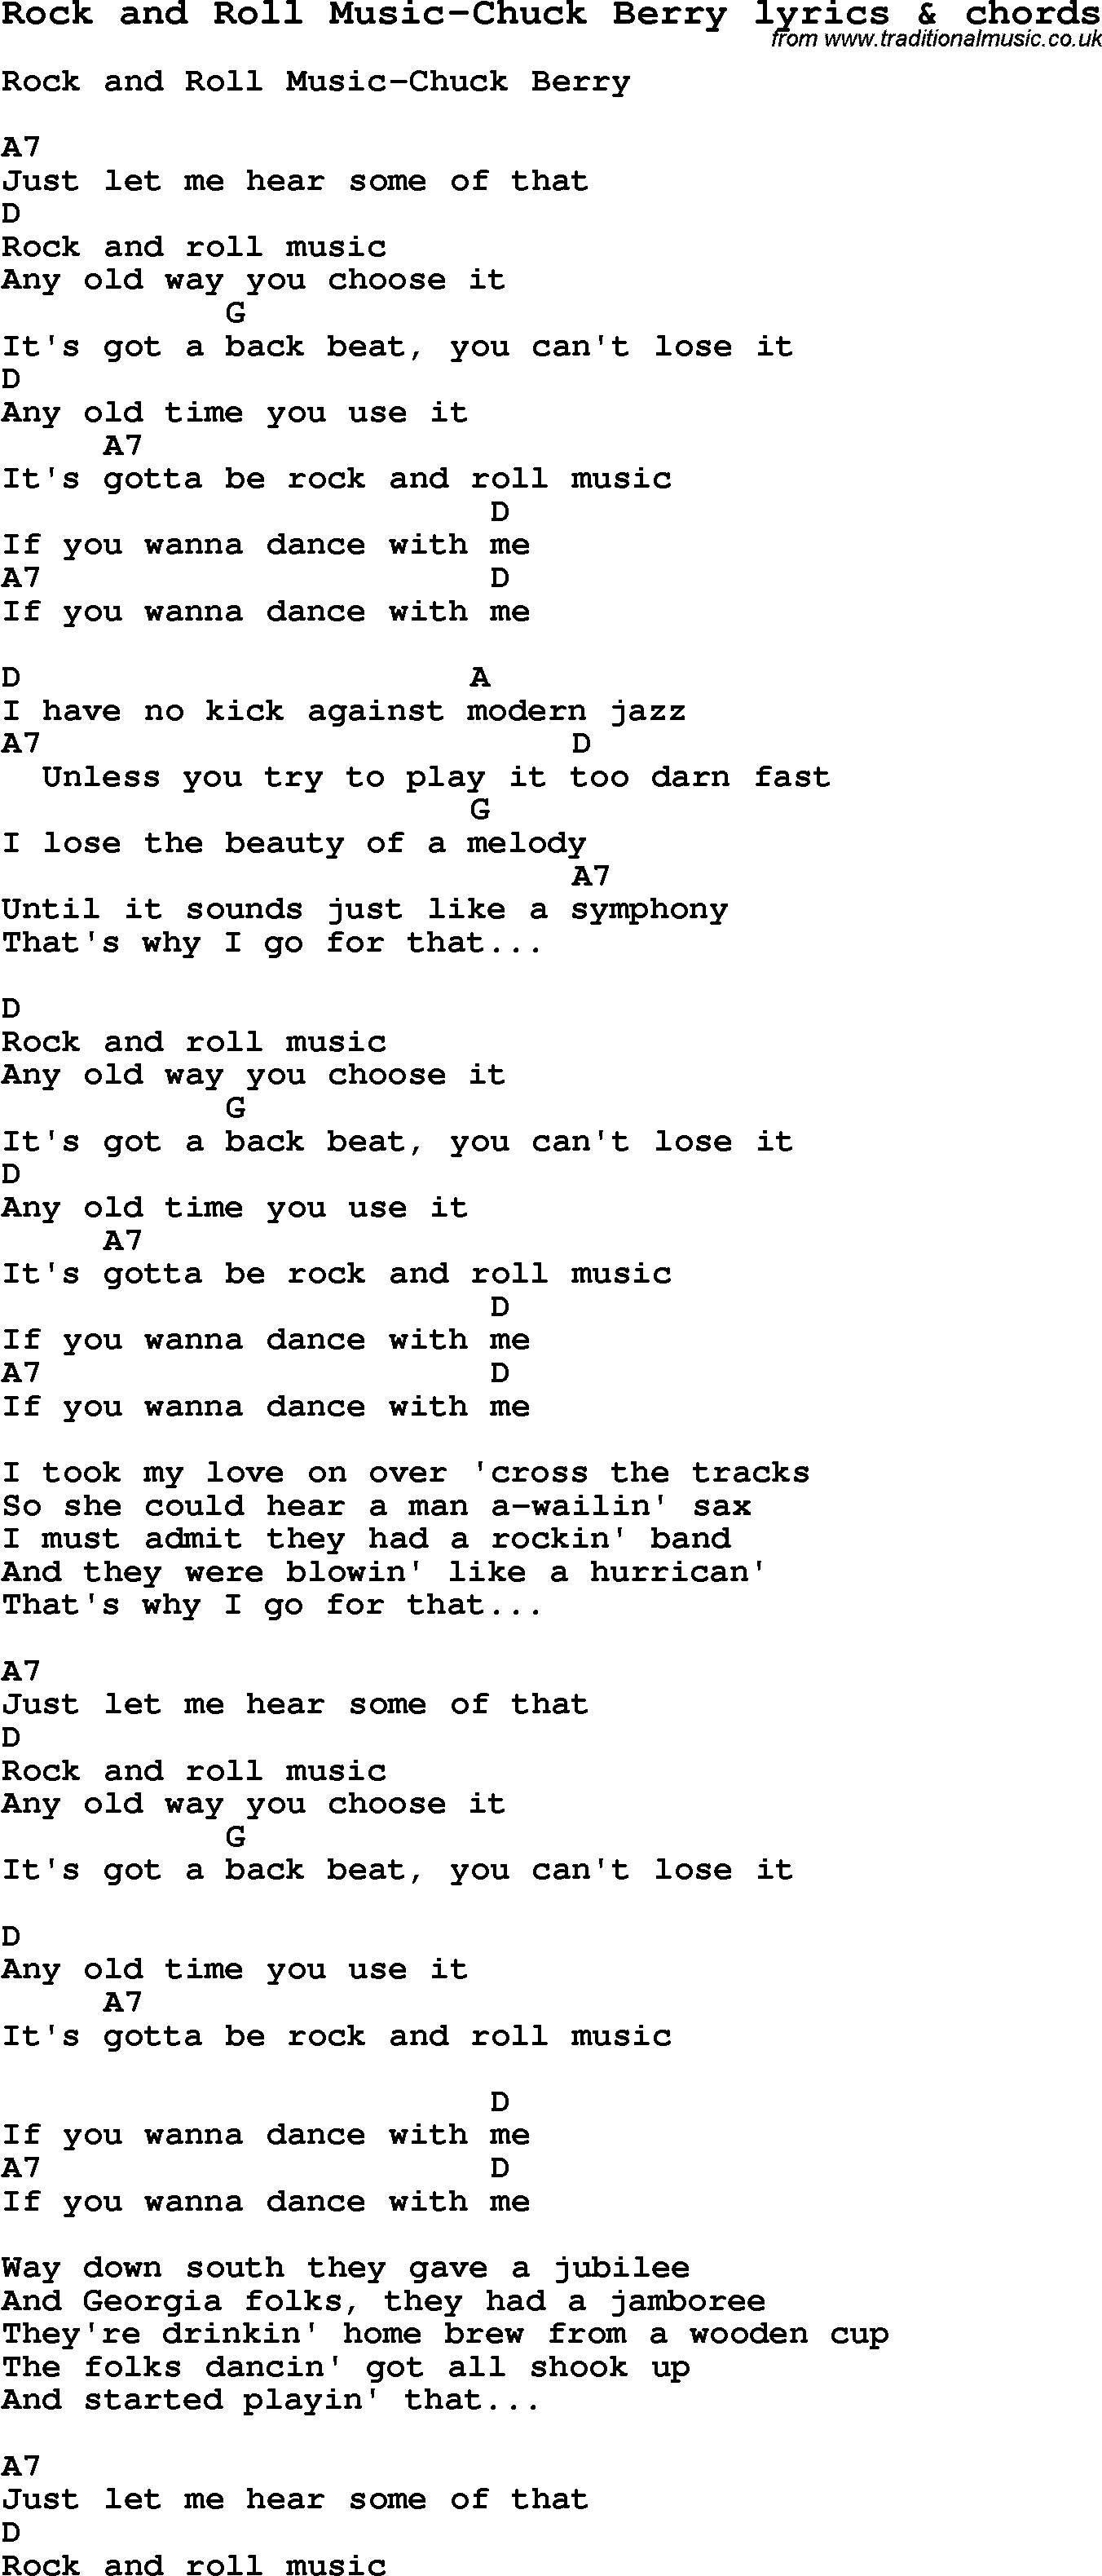 Love Song Lyrics For: Rock And Roll Music-Chuck Berry With Chords For  Ukulele